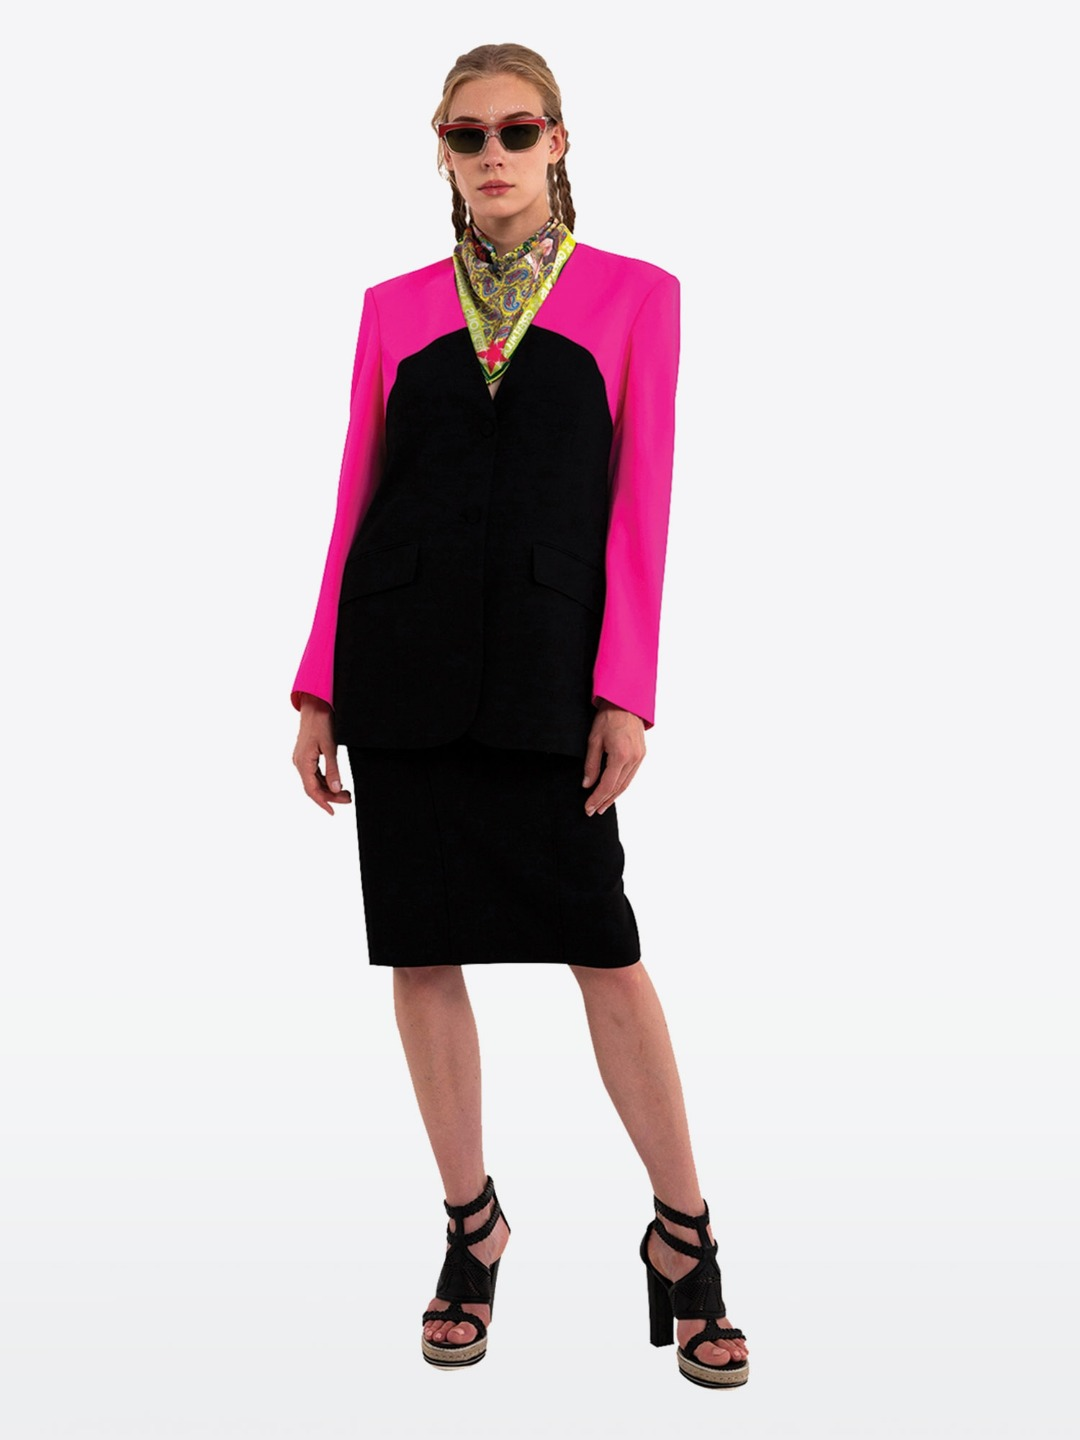 PINK NO COLLAR JACKET